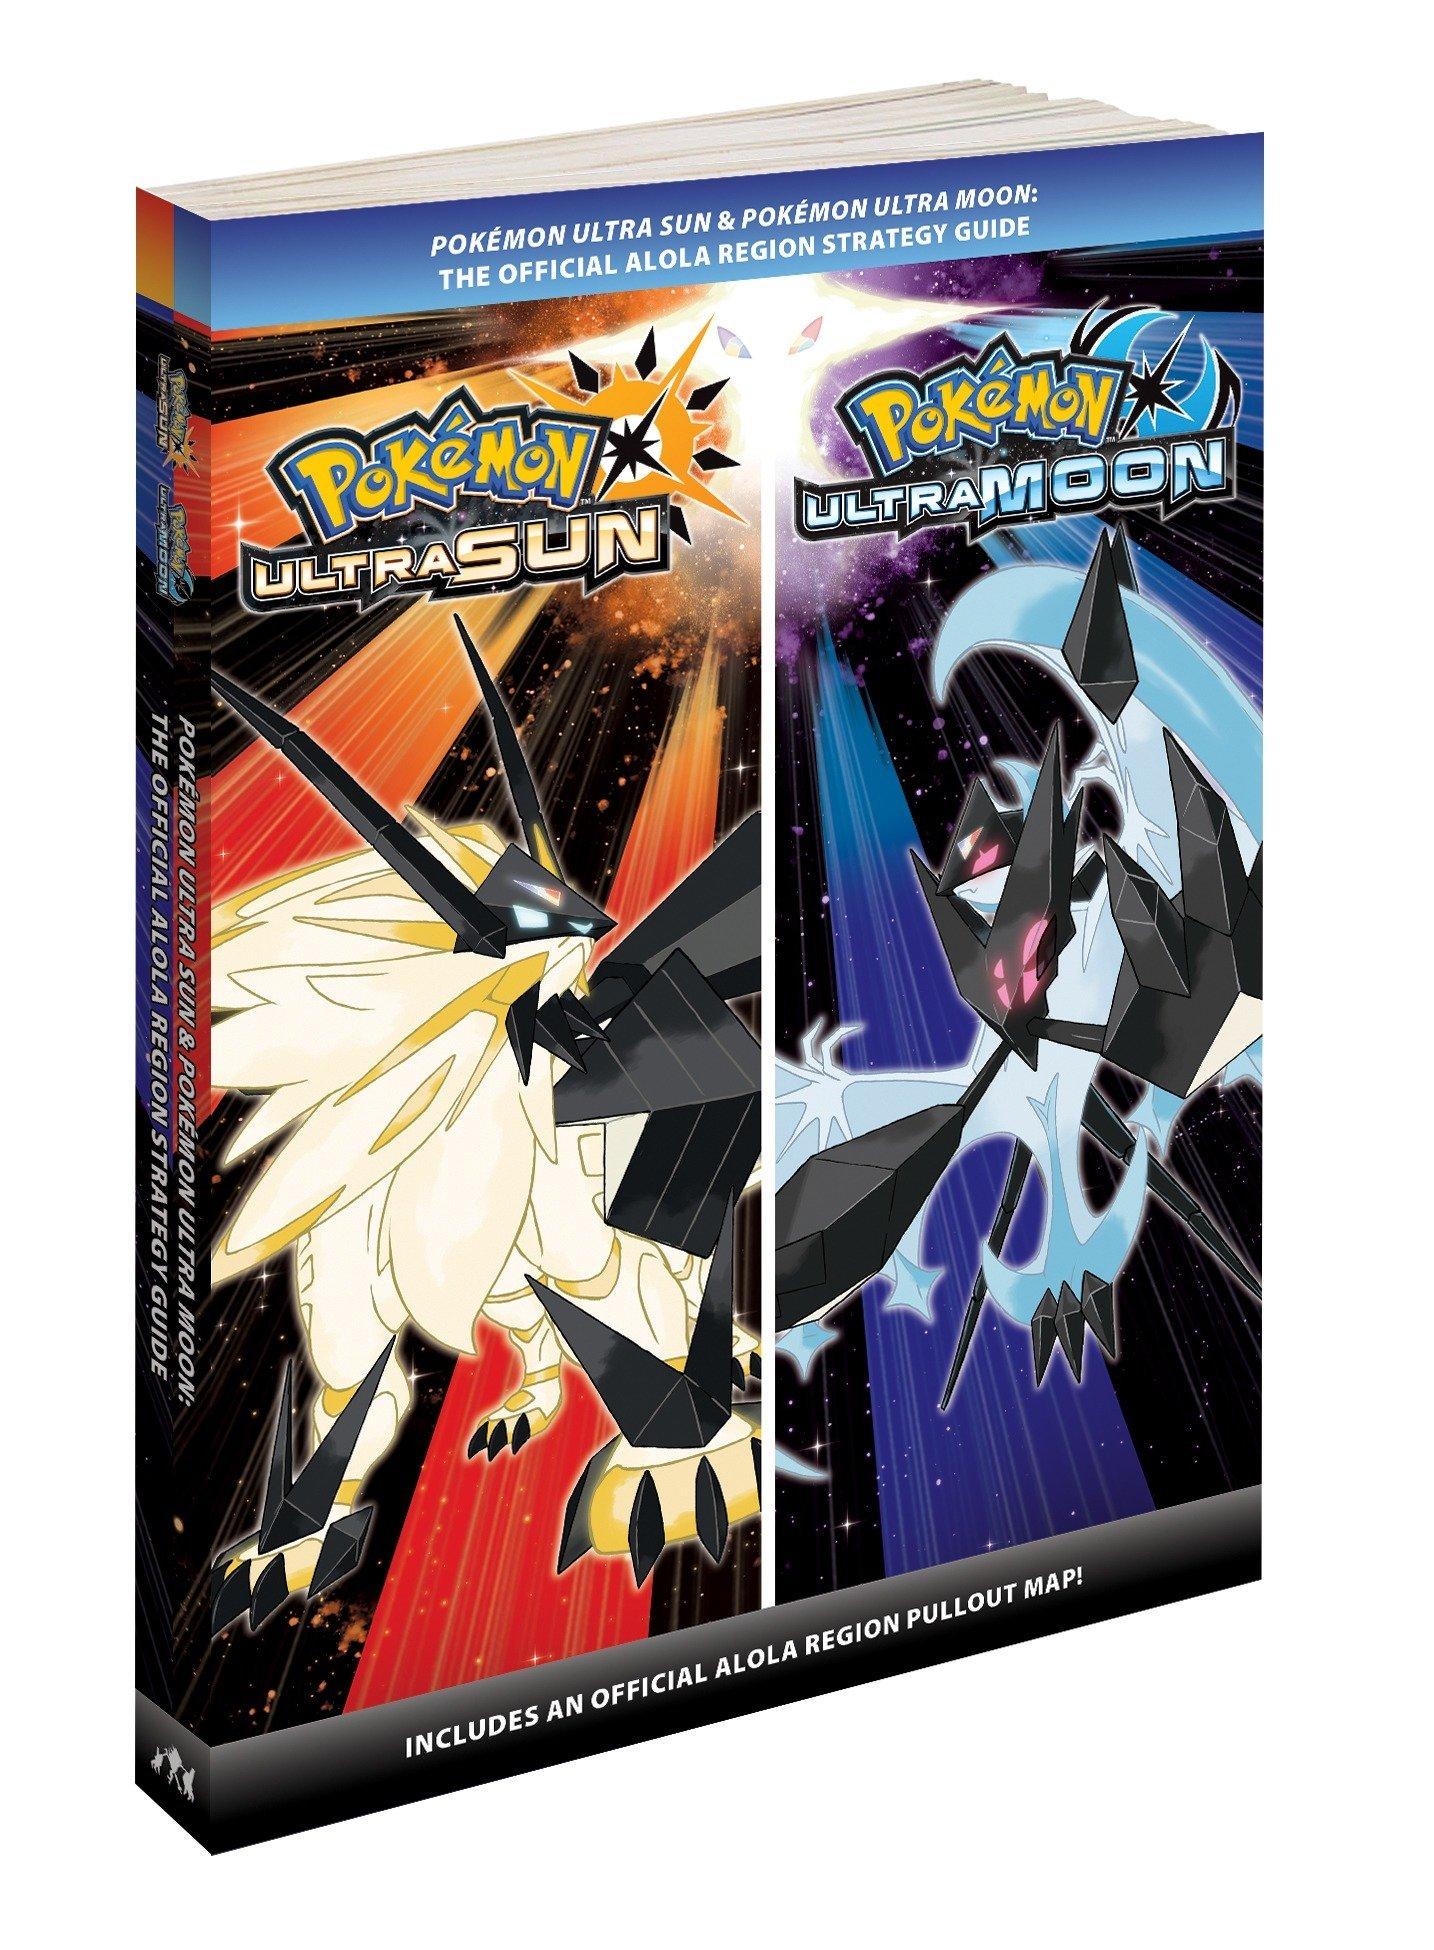 Buy Pokémon Ultra Sun & Pokémon Ultra Moon: The Official Alola